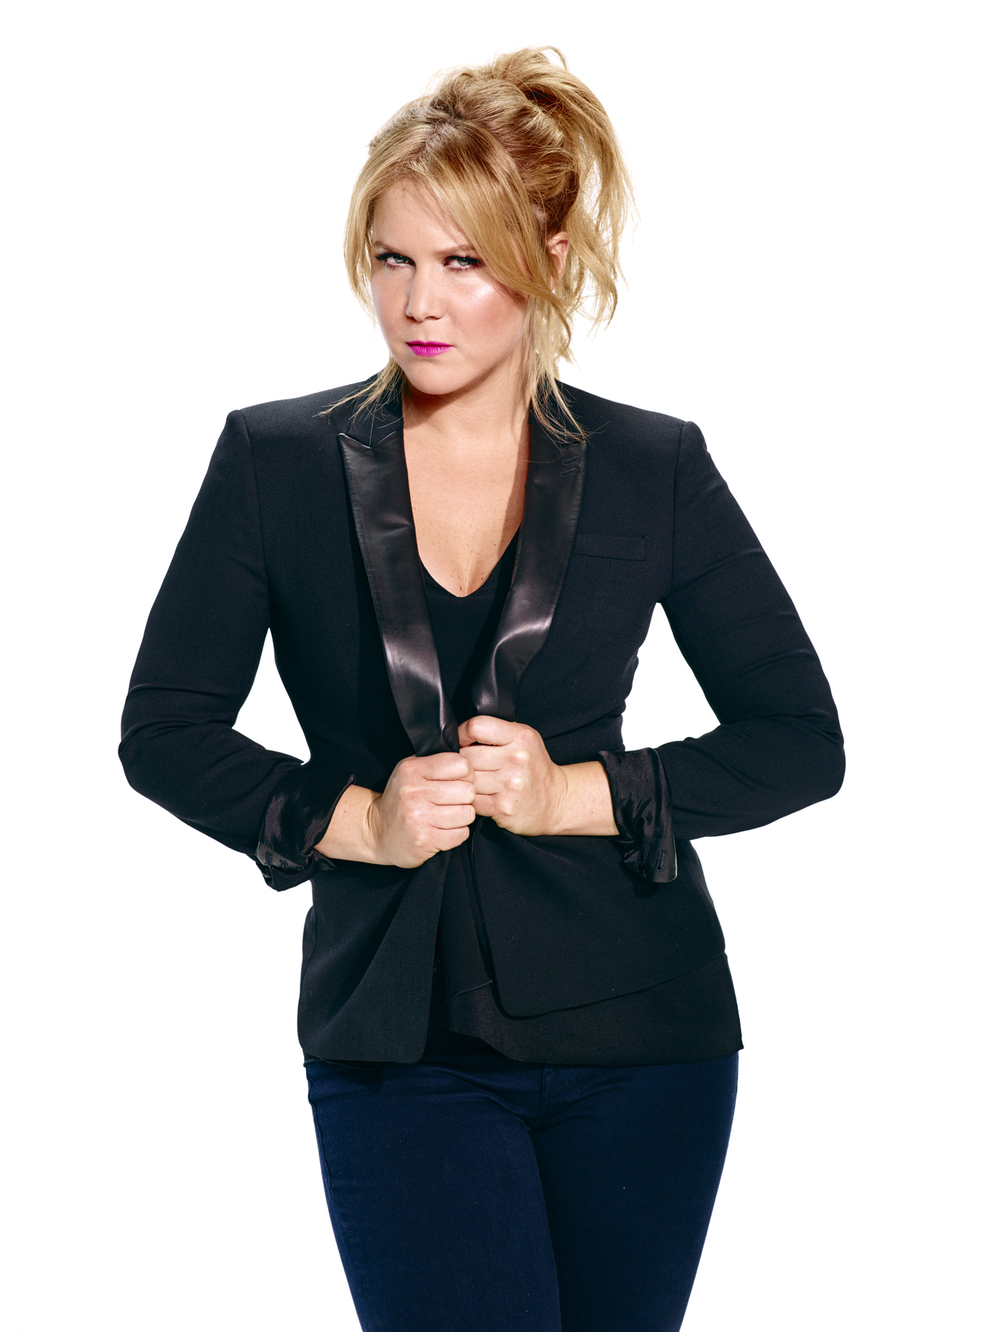 AmySchumer_S2_Coverage_C_1059.jpg